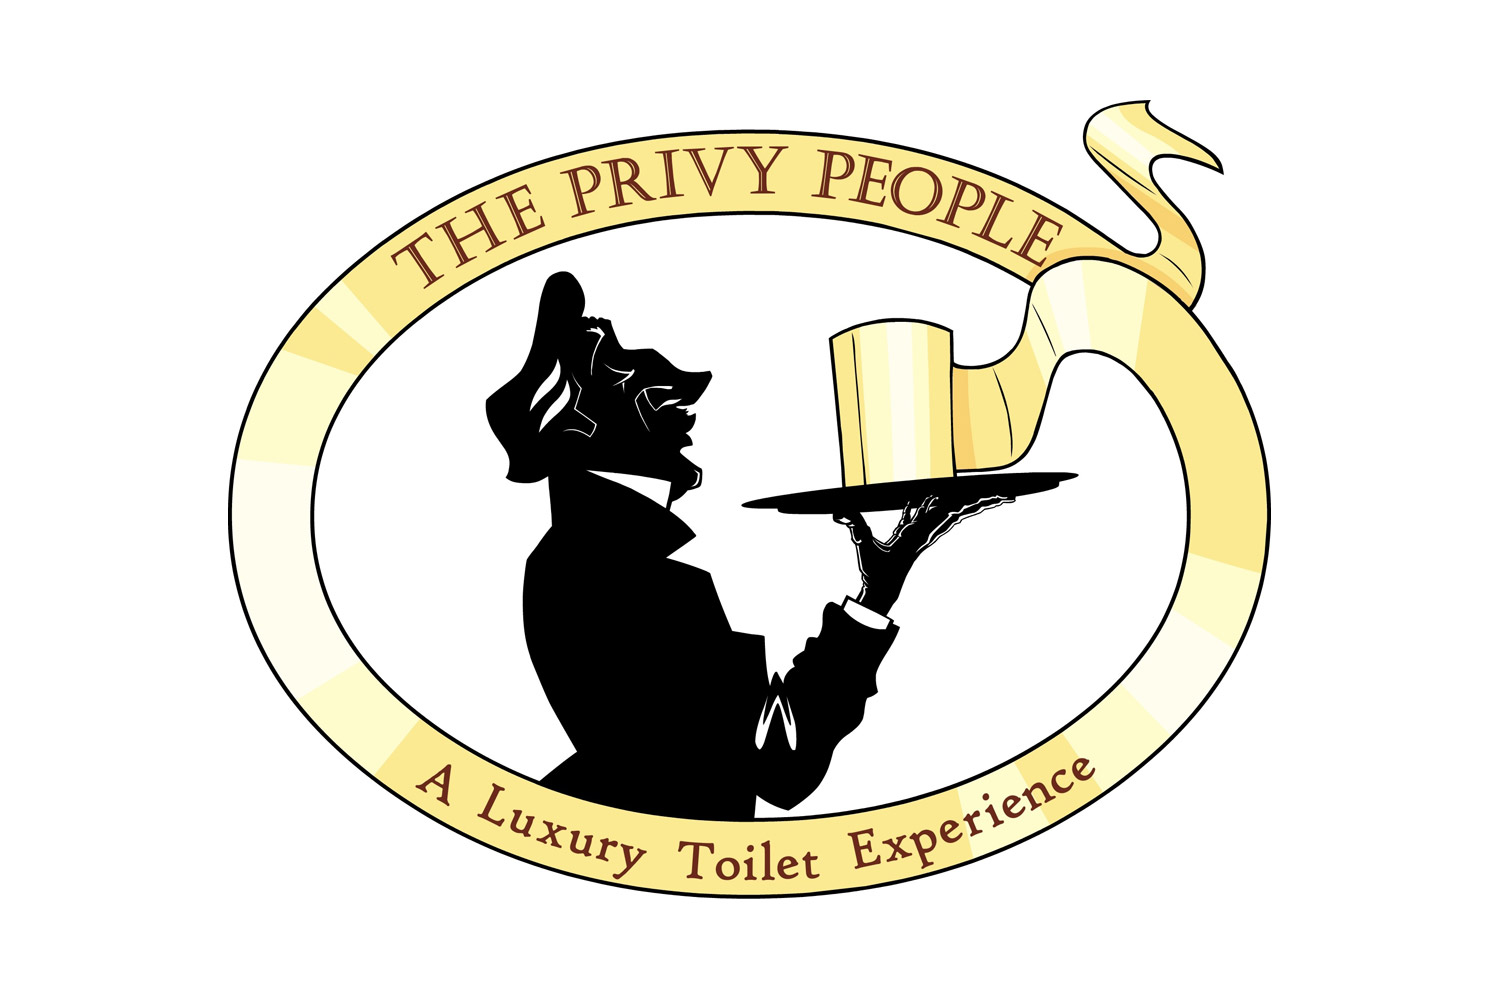 The Privy People